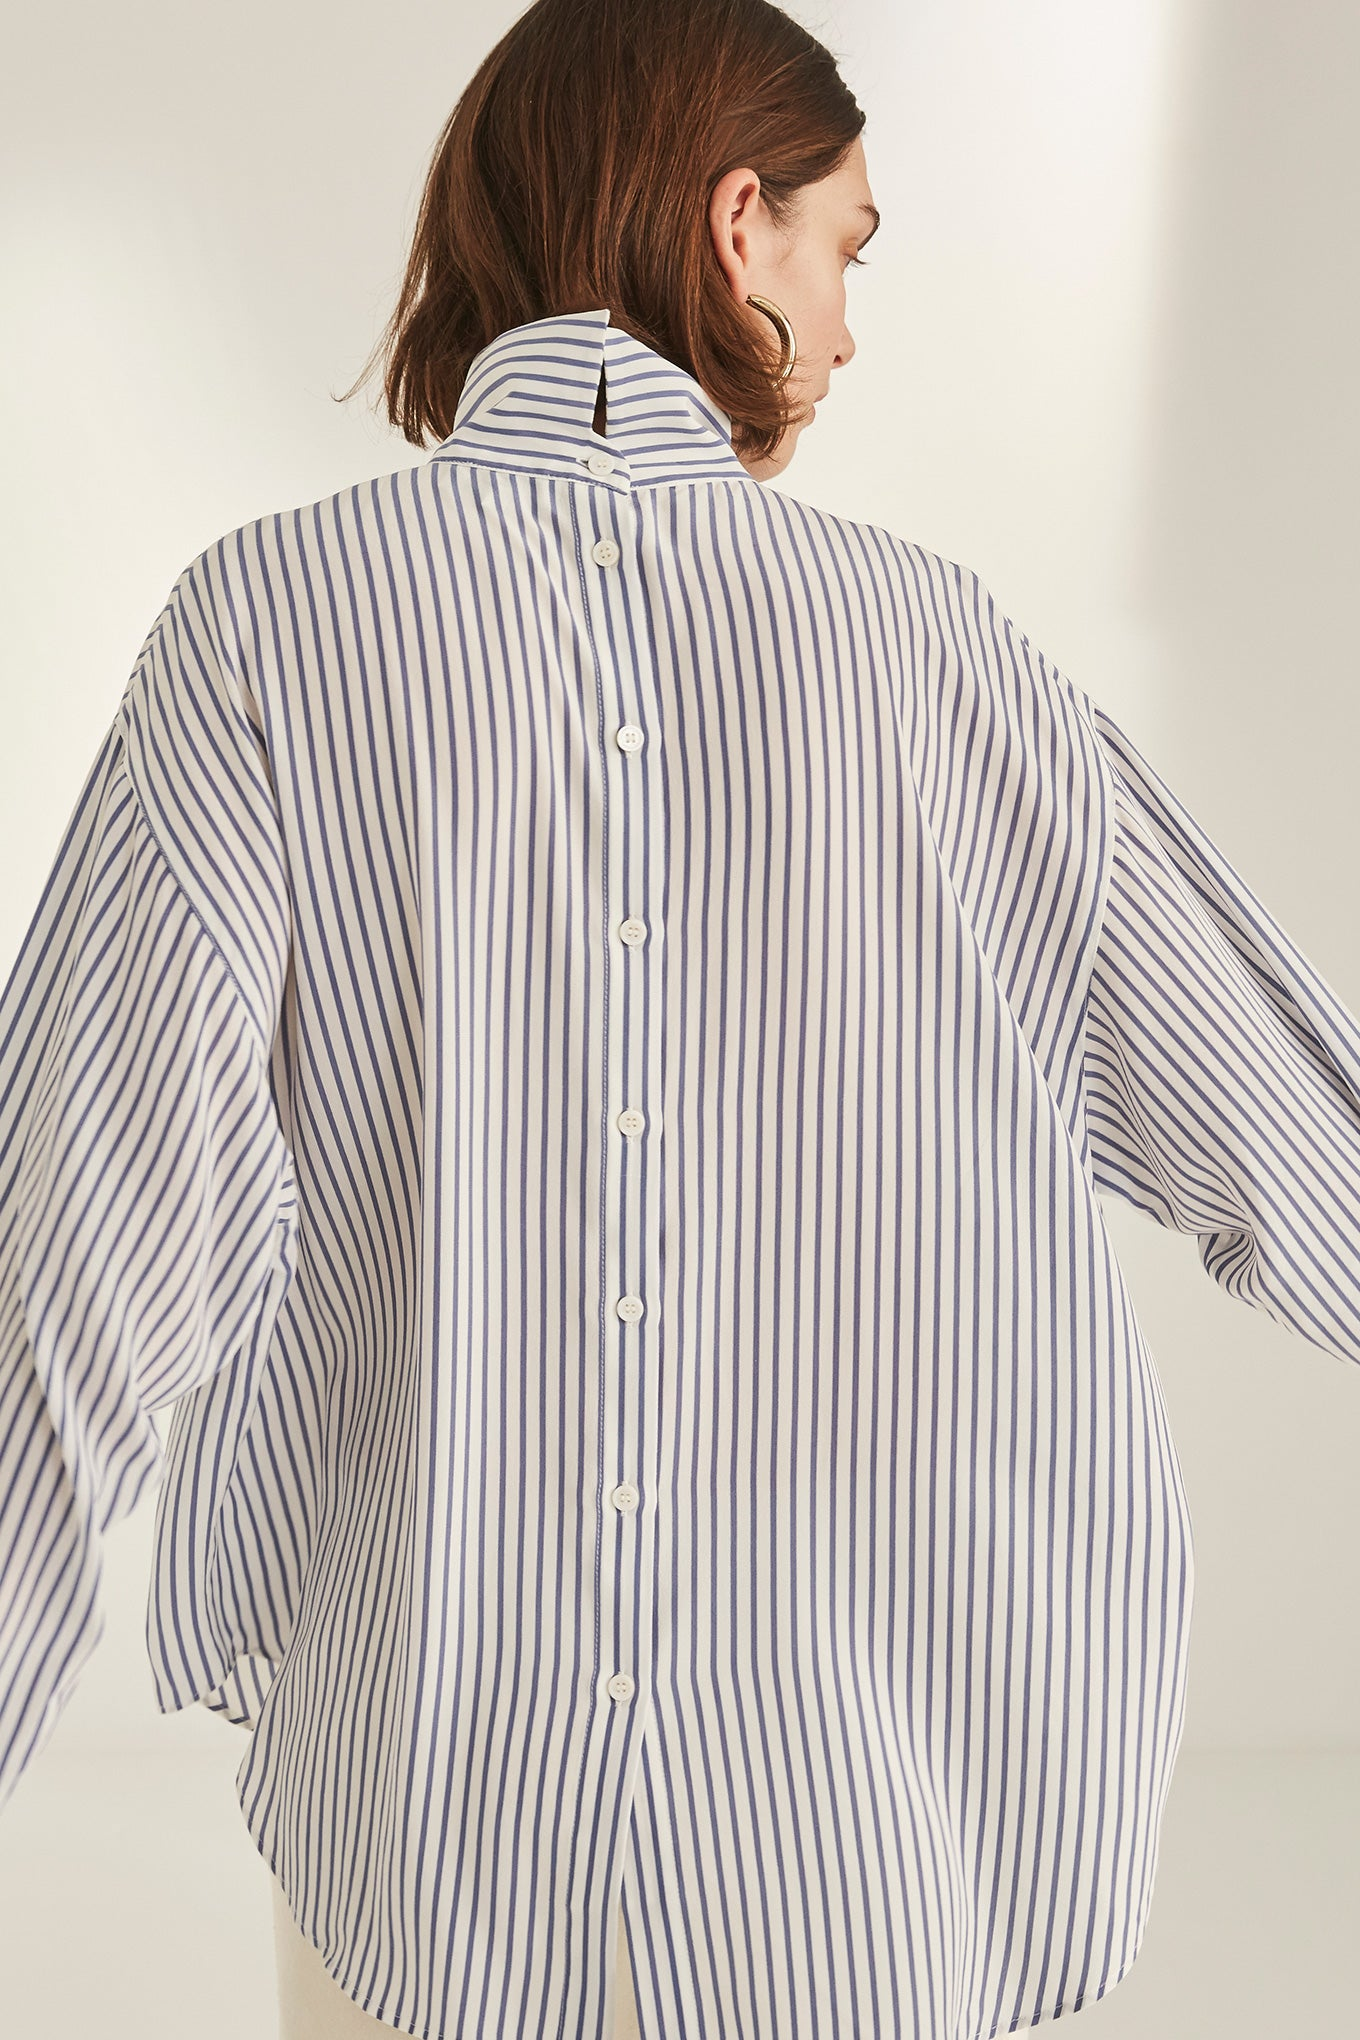 Valli Blouse - Blue Stripe